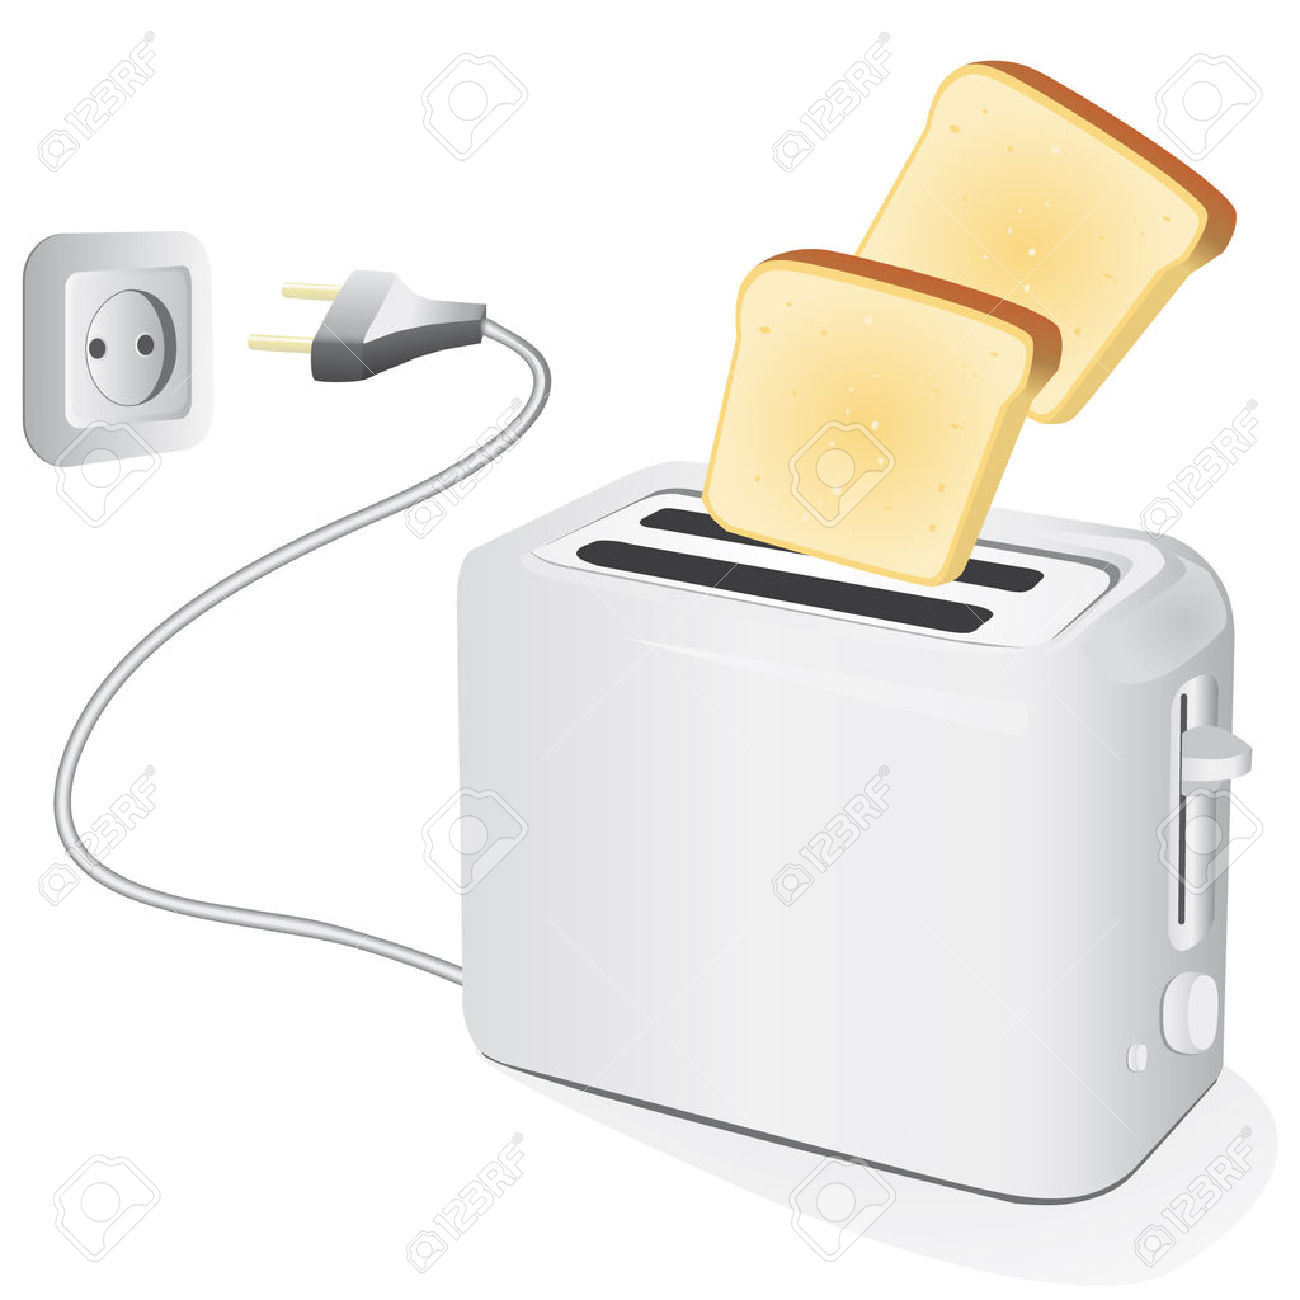 Plastic Electric Toaster With Toast. Illustration Royalty Free.